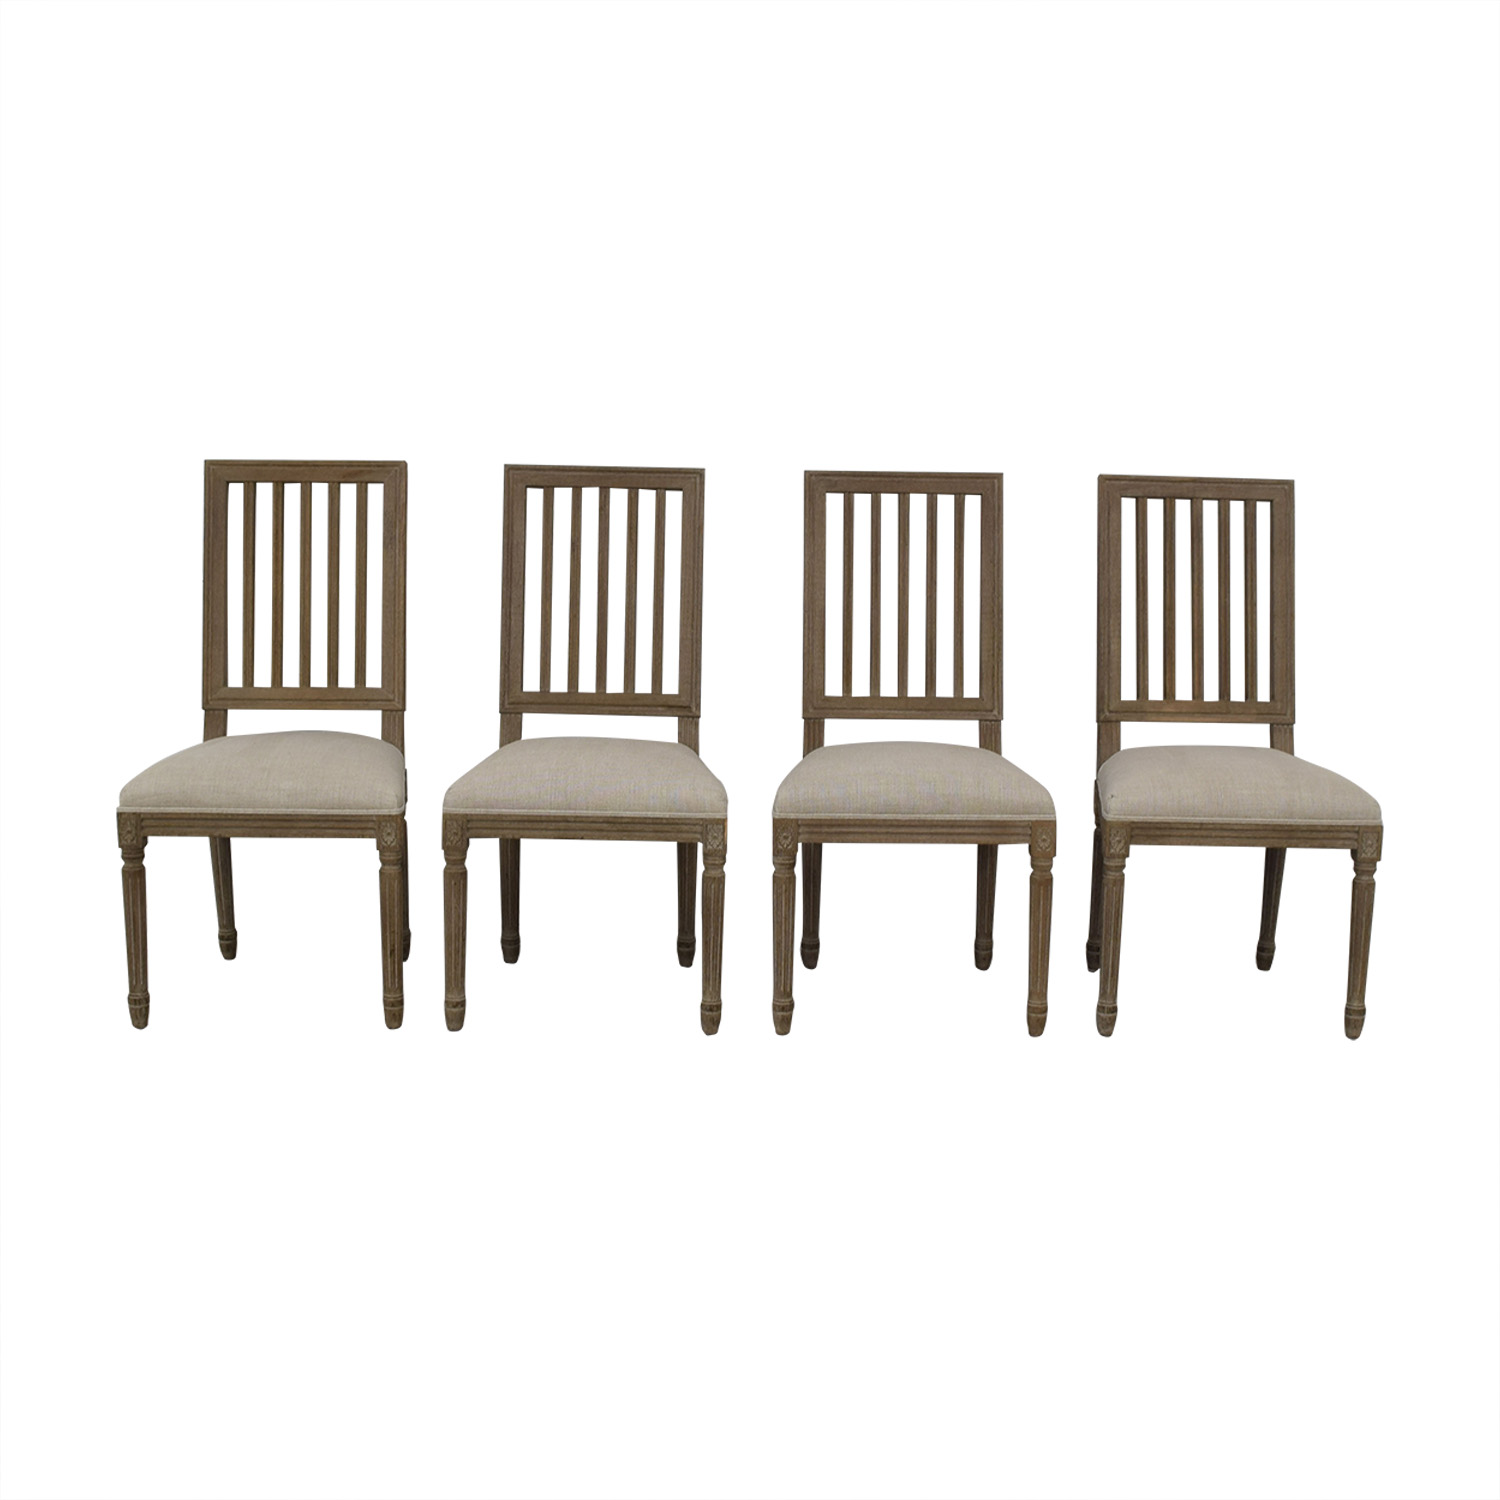 shop Restoration Hardware Spindle Back Dining Chairs Restoration Hardware Chairs